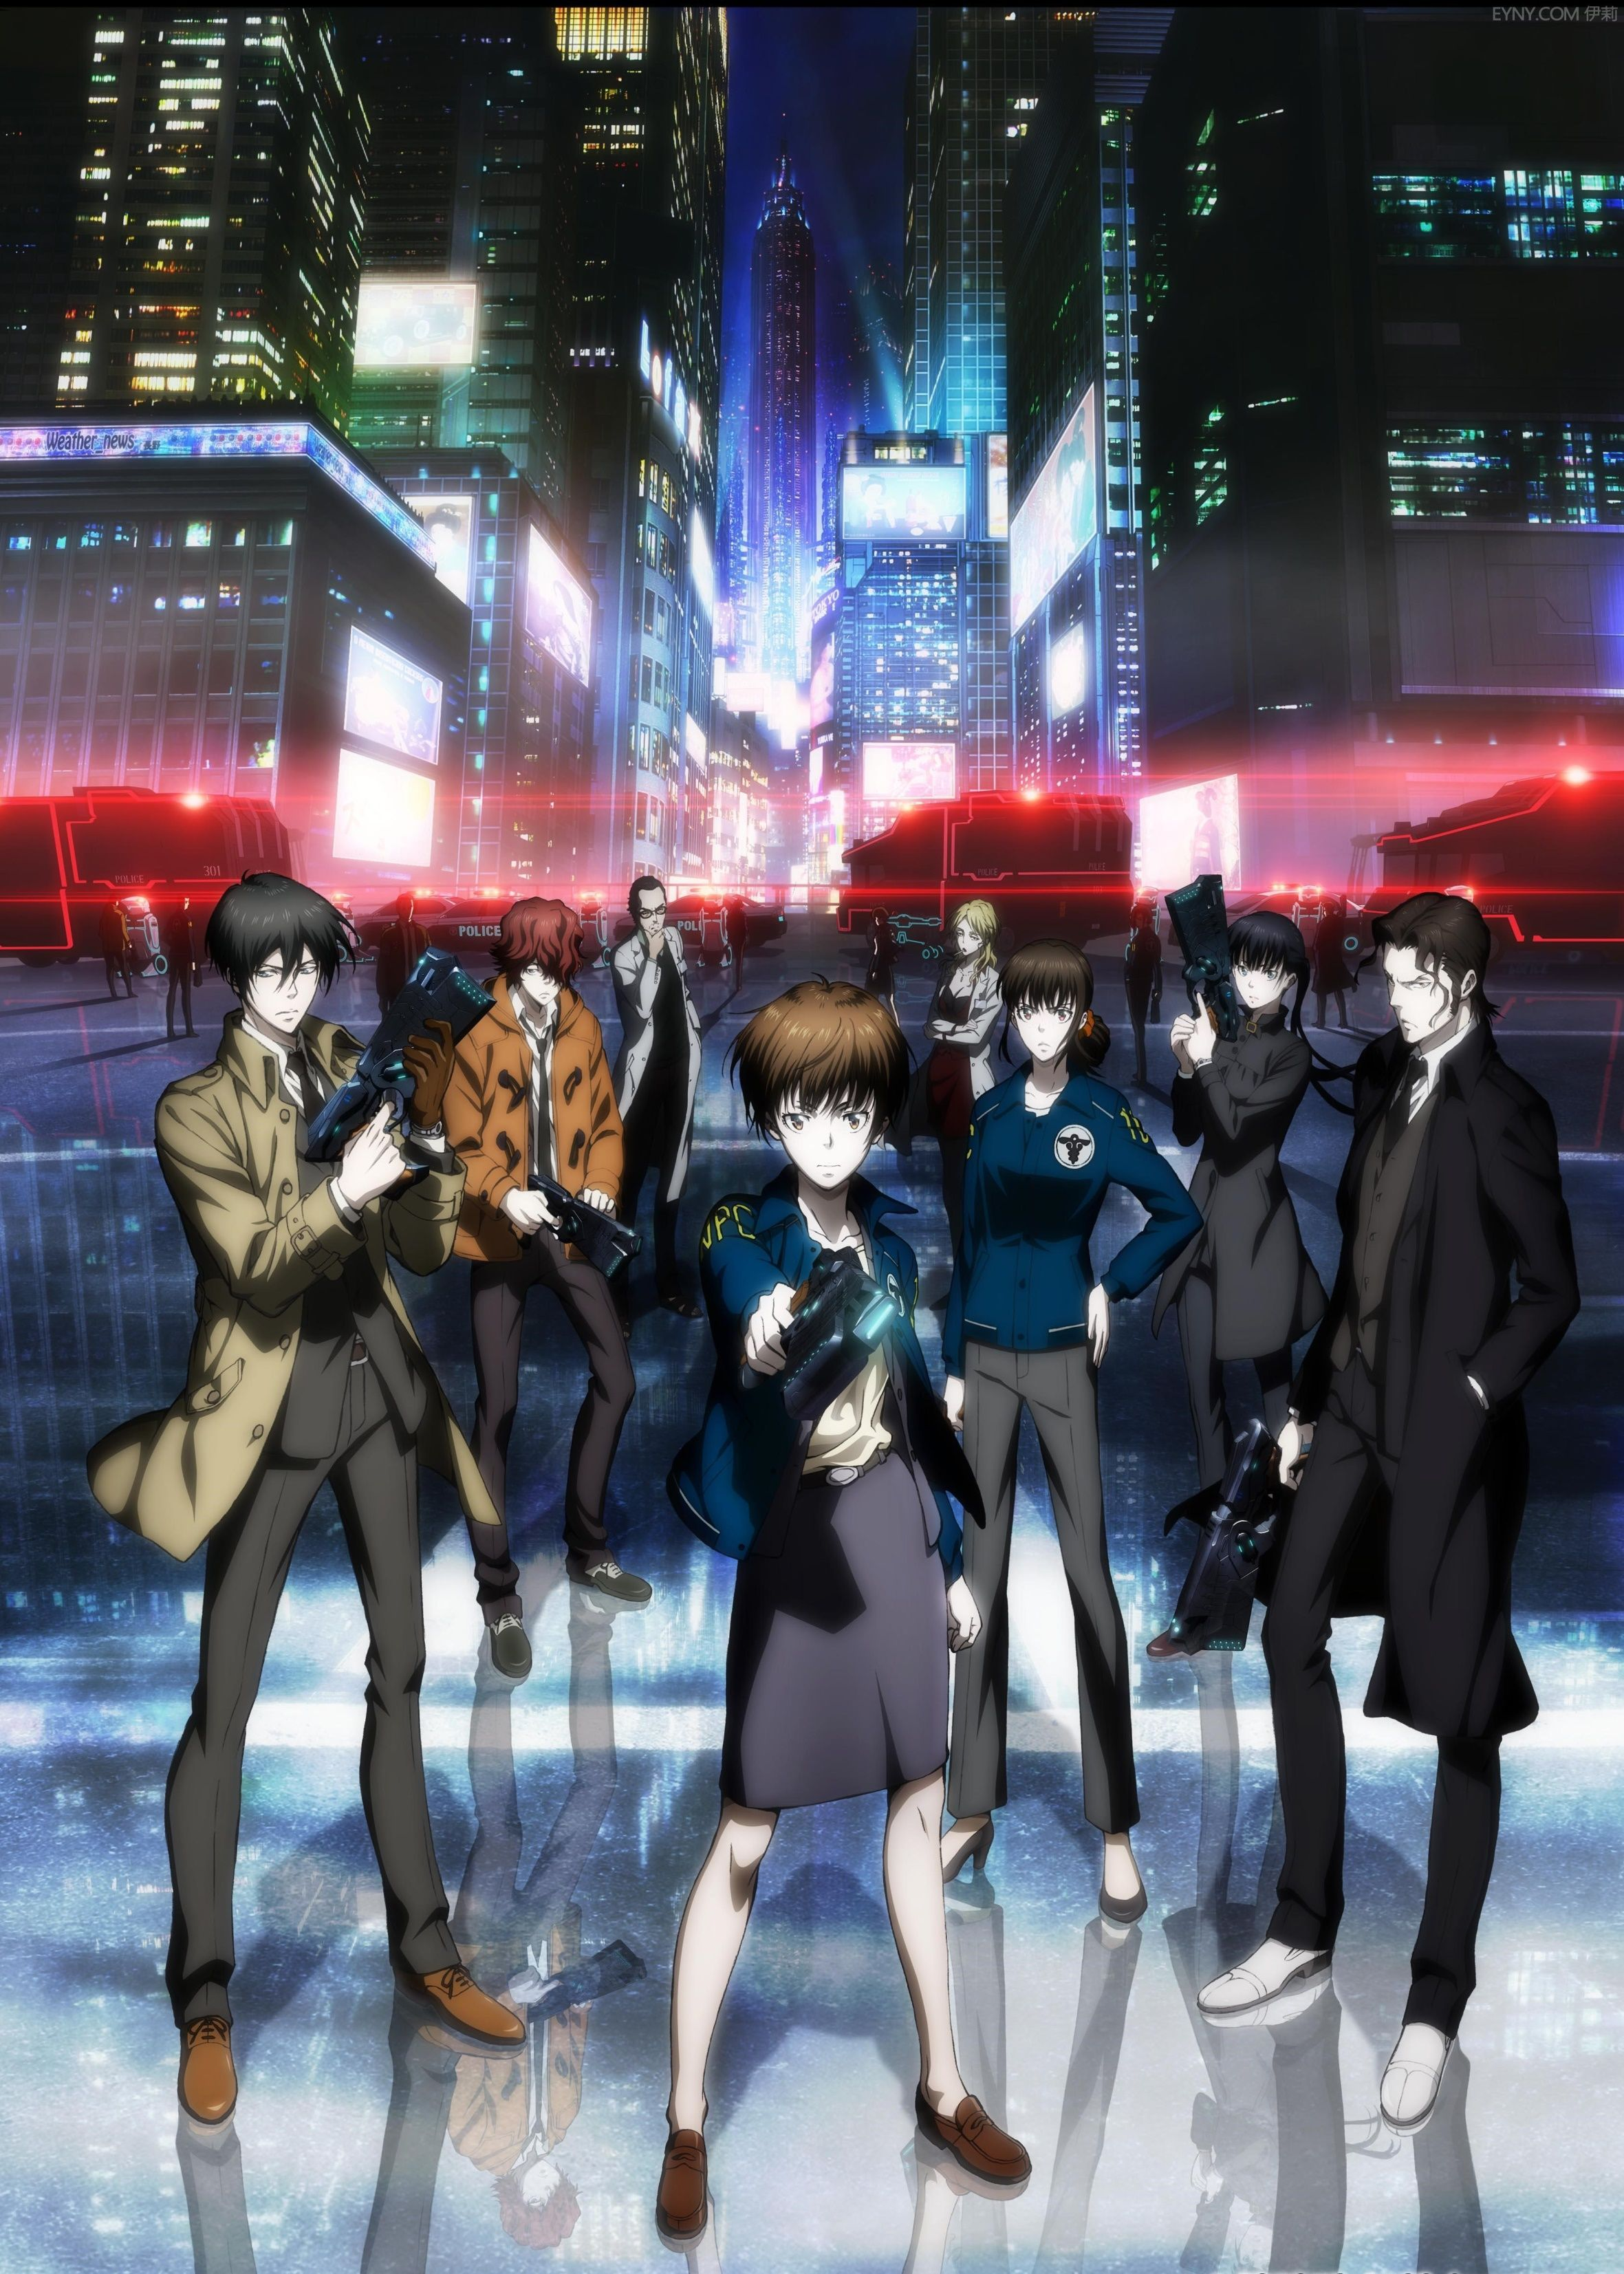 The post PsychoPass 2 01 11 appeared first on Erai